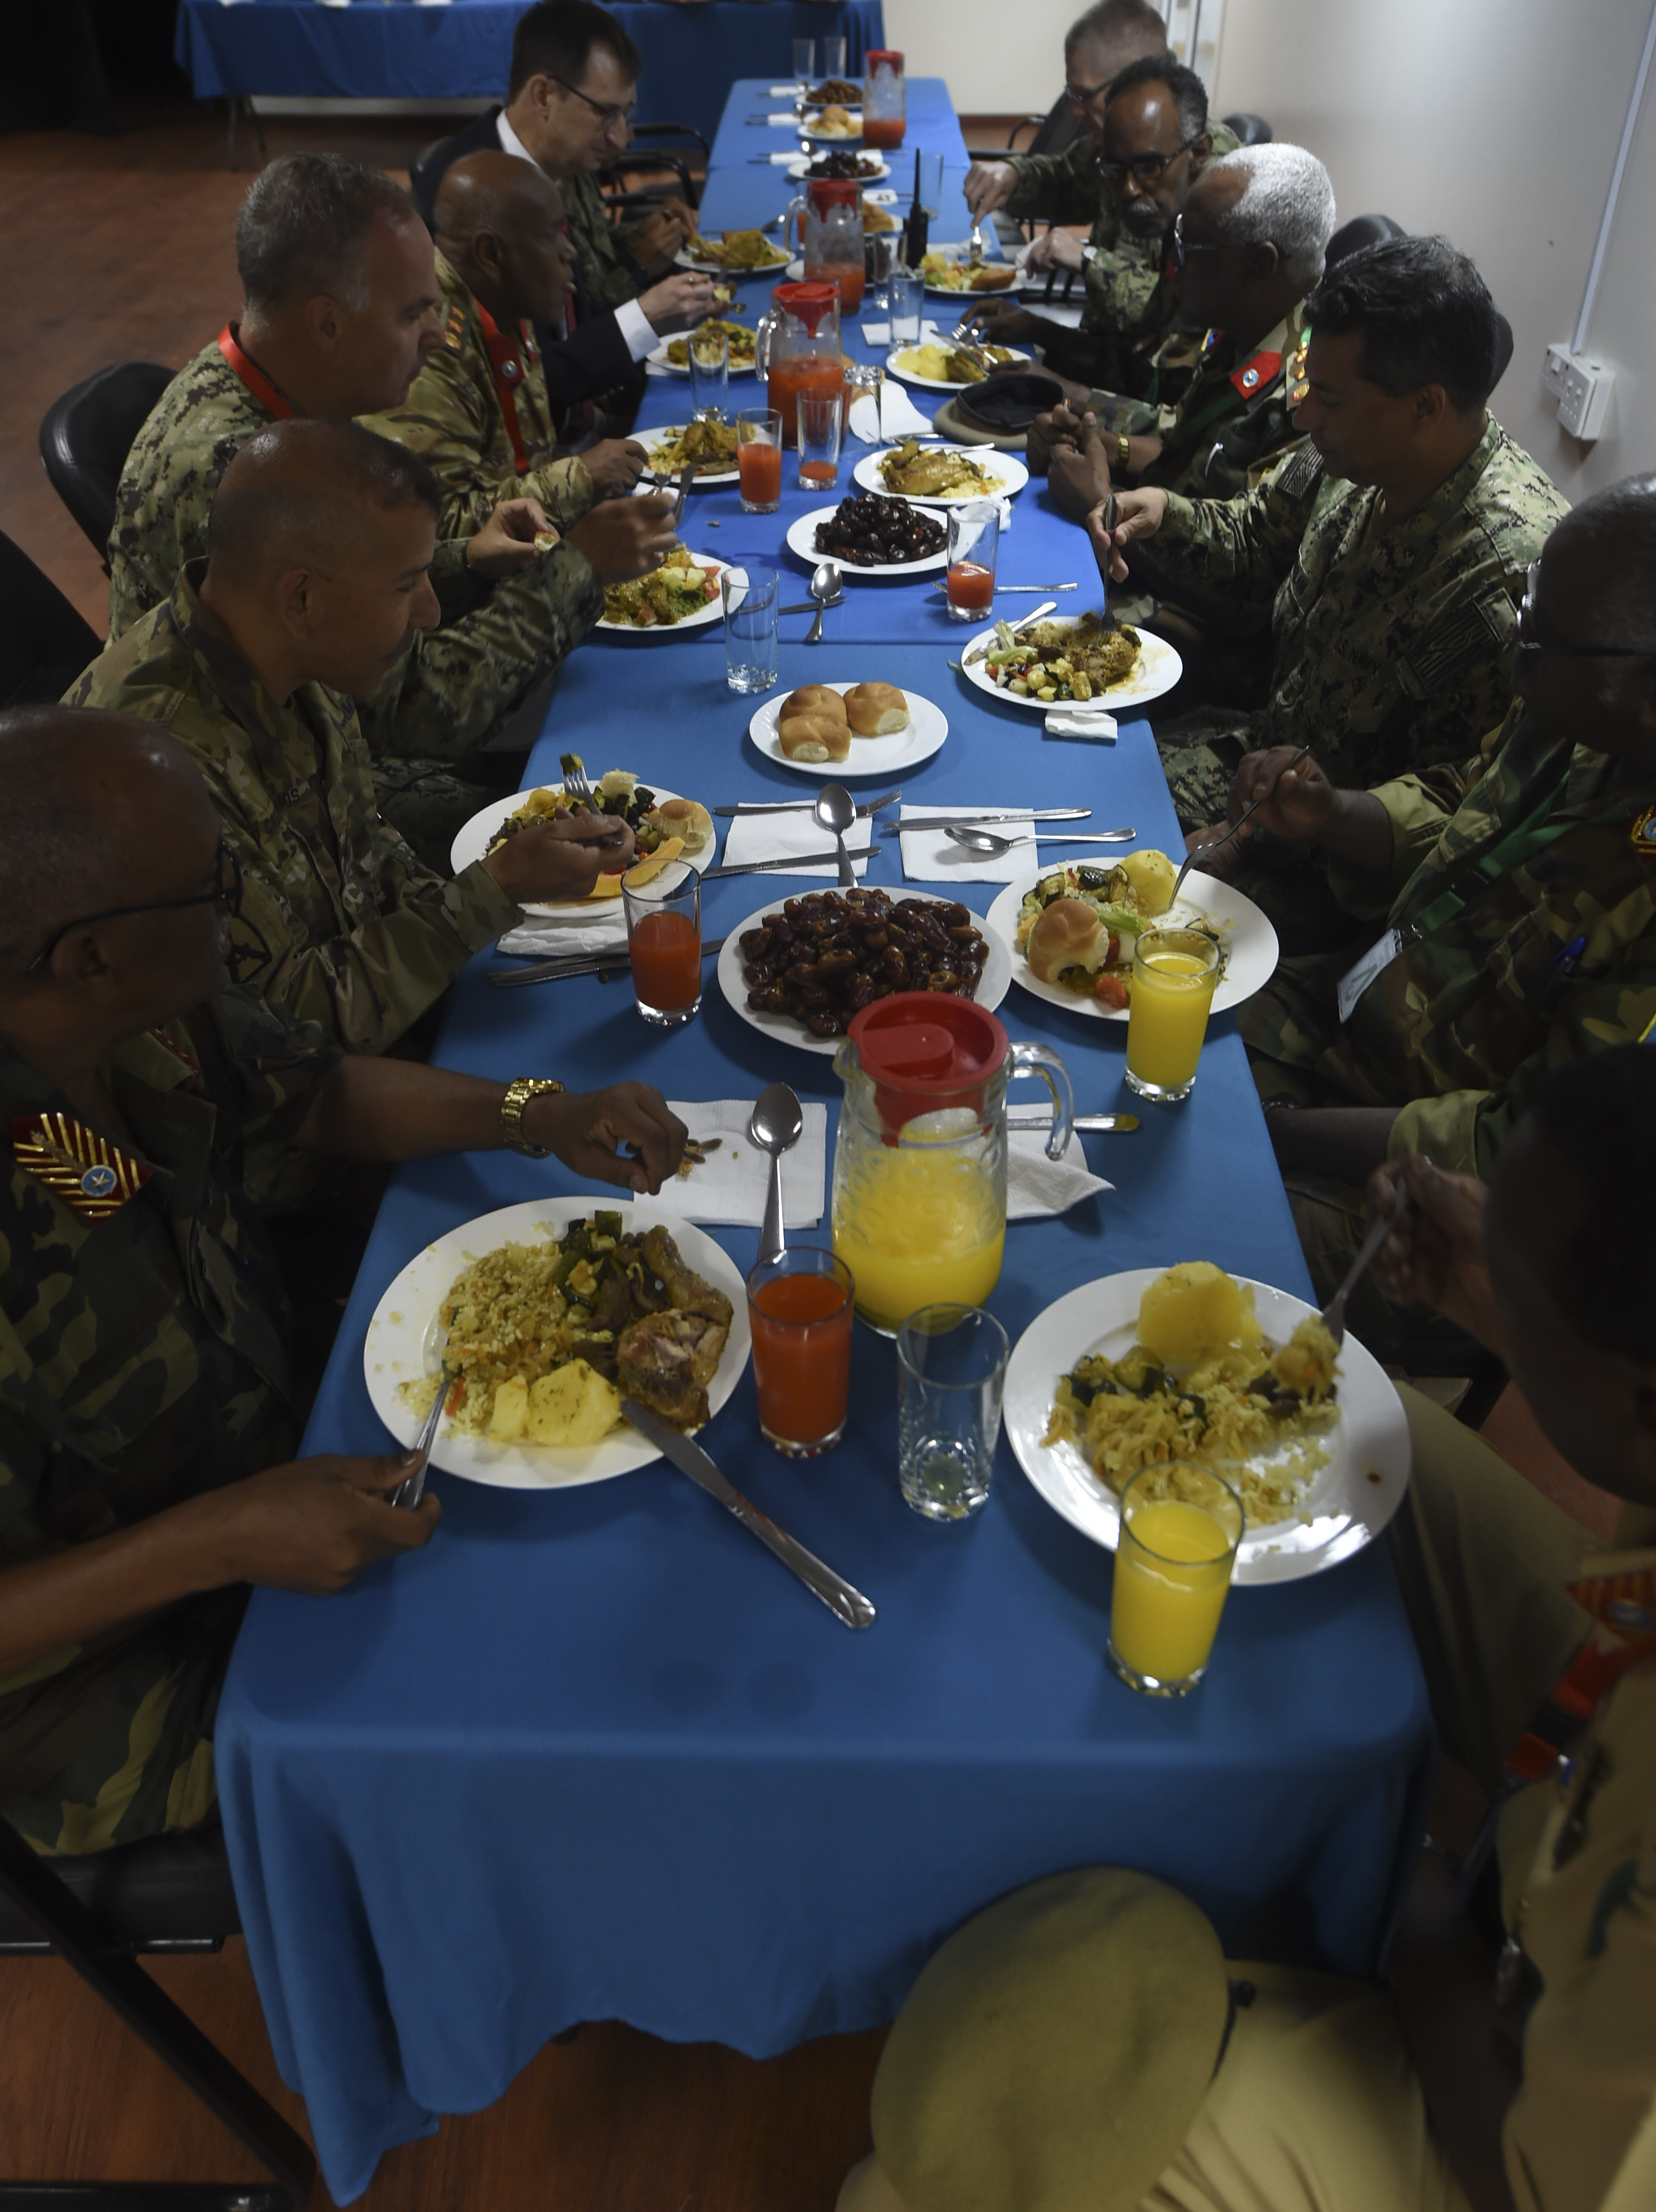 Service members from the U.S. and Somali National Army join for an Iftar, the nightly meal that ends the day's fast during Ramadan, at the Mogadishu International Airport in Mogadishu, Somalia, June 5, 2017. U.S. Army Brig. Gen. Miguel Castellanos, Combined Joint Task Force-Horn of Africa deputy commanding general in Somalia and Mogadishu Coordination Cell director, hosted the Iftar, strengthening bonds between the U.S. and Somali militaries. (U.S. Air Force Photo by Staff Sgt. Eboni Prince)